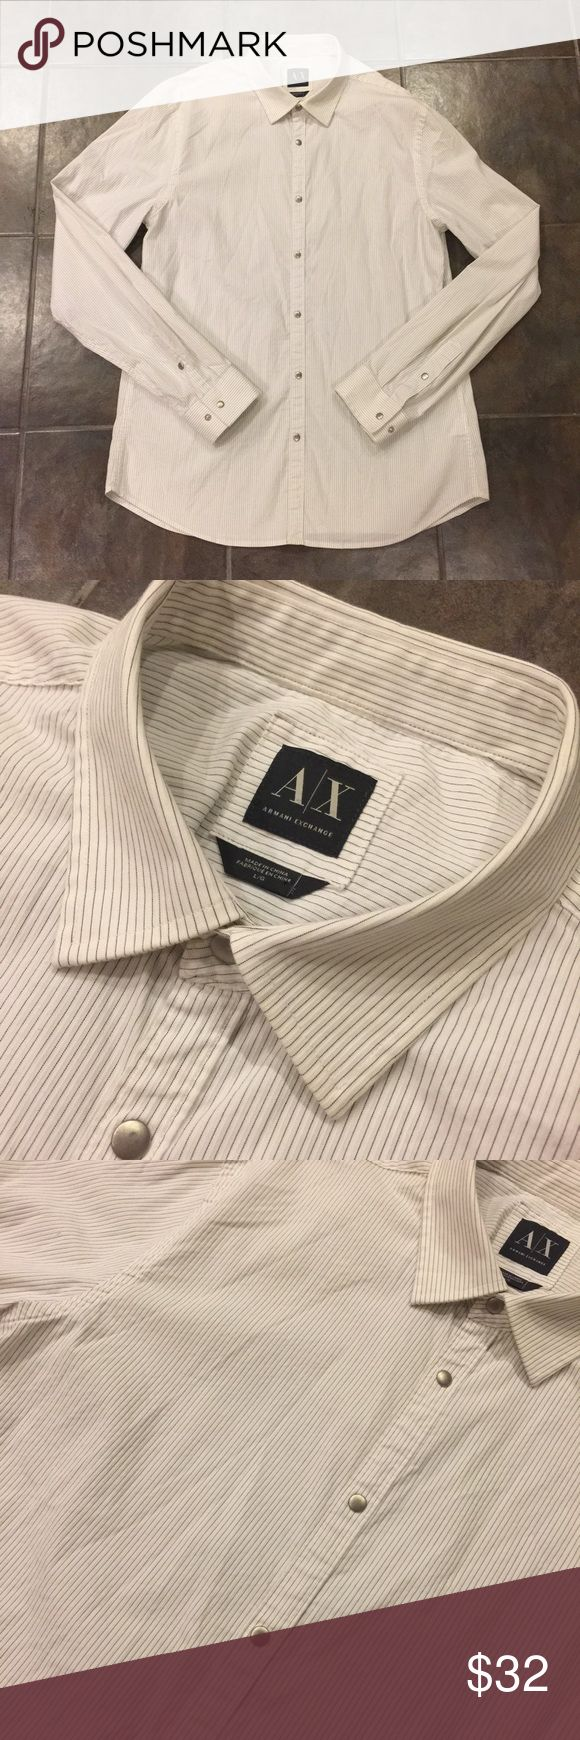 A/X ARMANI EXCHANGE White Striped Button Down Want to impress your boss? Wear this shirt. Want to impress your date? Wear this shirt. Want to find a date? Wear this shirt! This gorgeous fitted collared Button Down from Armani Exchange will take you from the board room to date night seamlessly. Who doesn't love easy style! Armani Exchange Shirts Dress Shirts